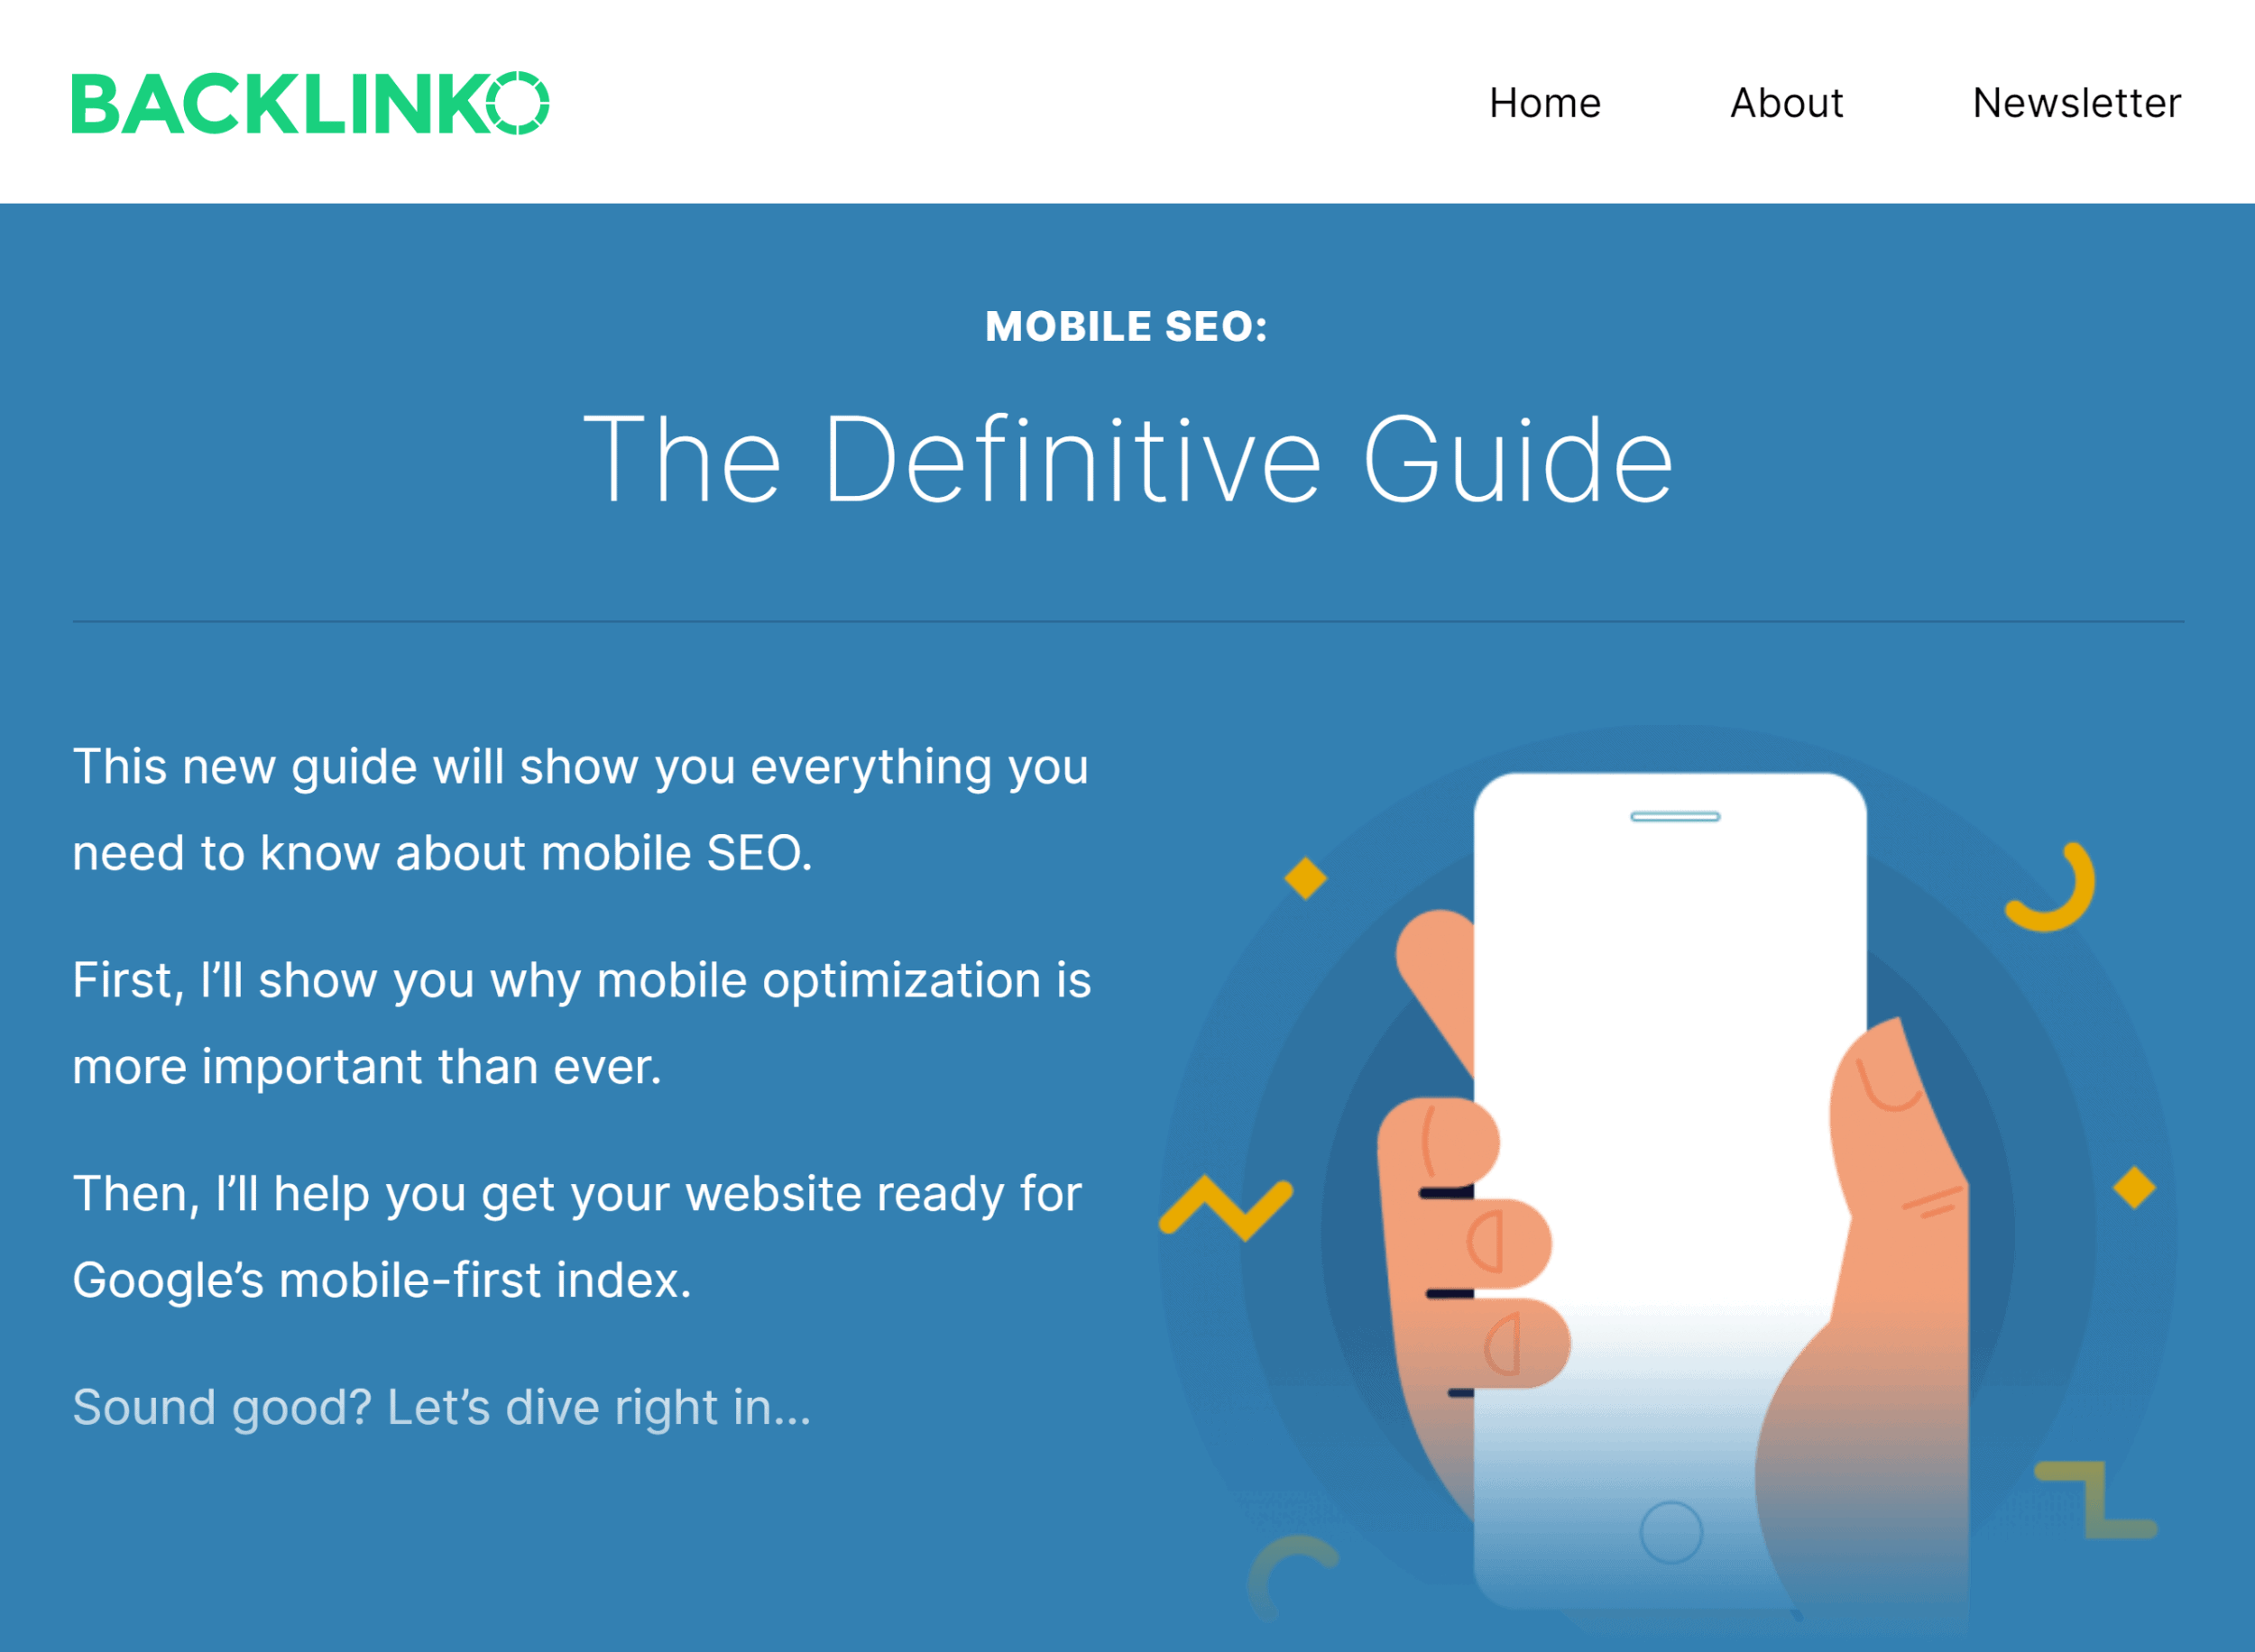 Backlinko – Mobile SEO Guide